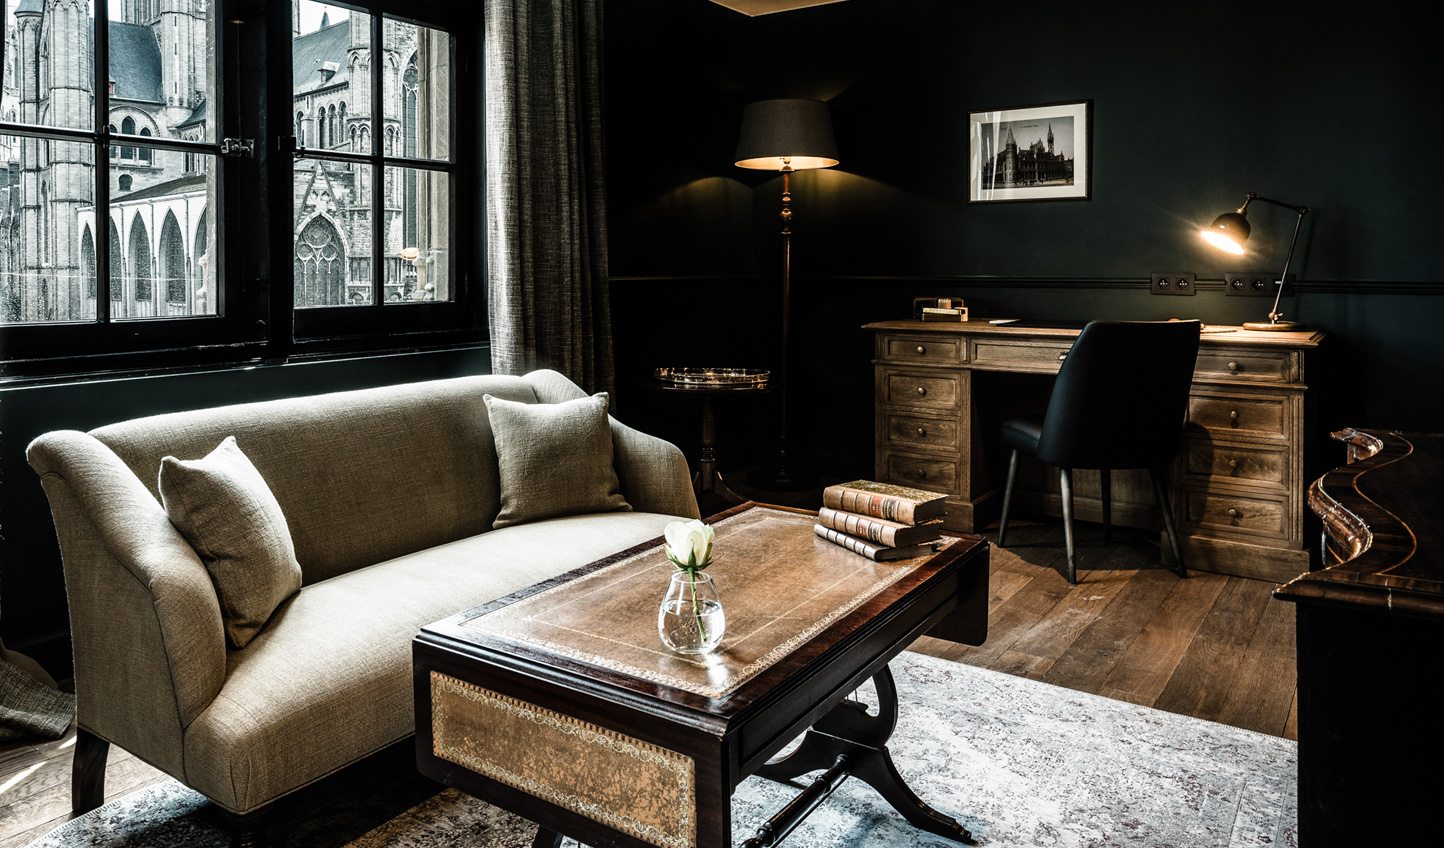 Photography of Ghent and antique pieces are draped around the spaces, echoing the style of the building's historic architecture